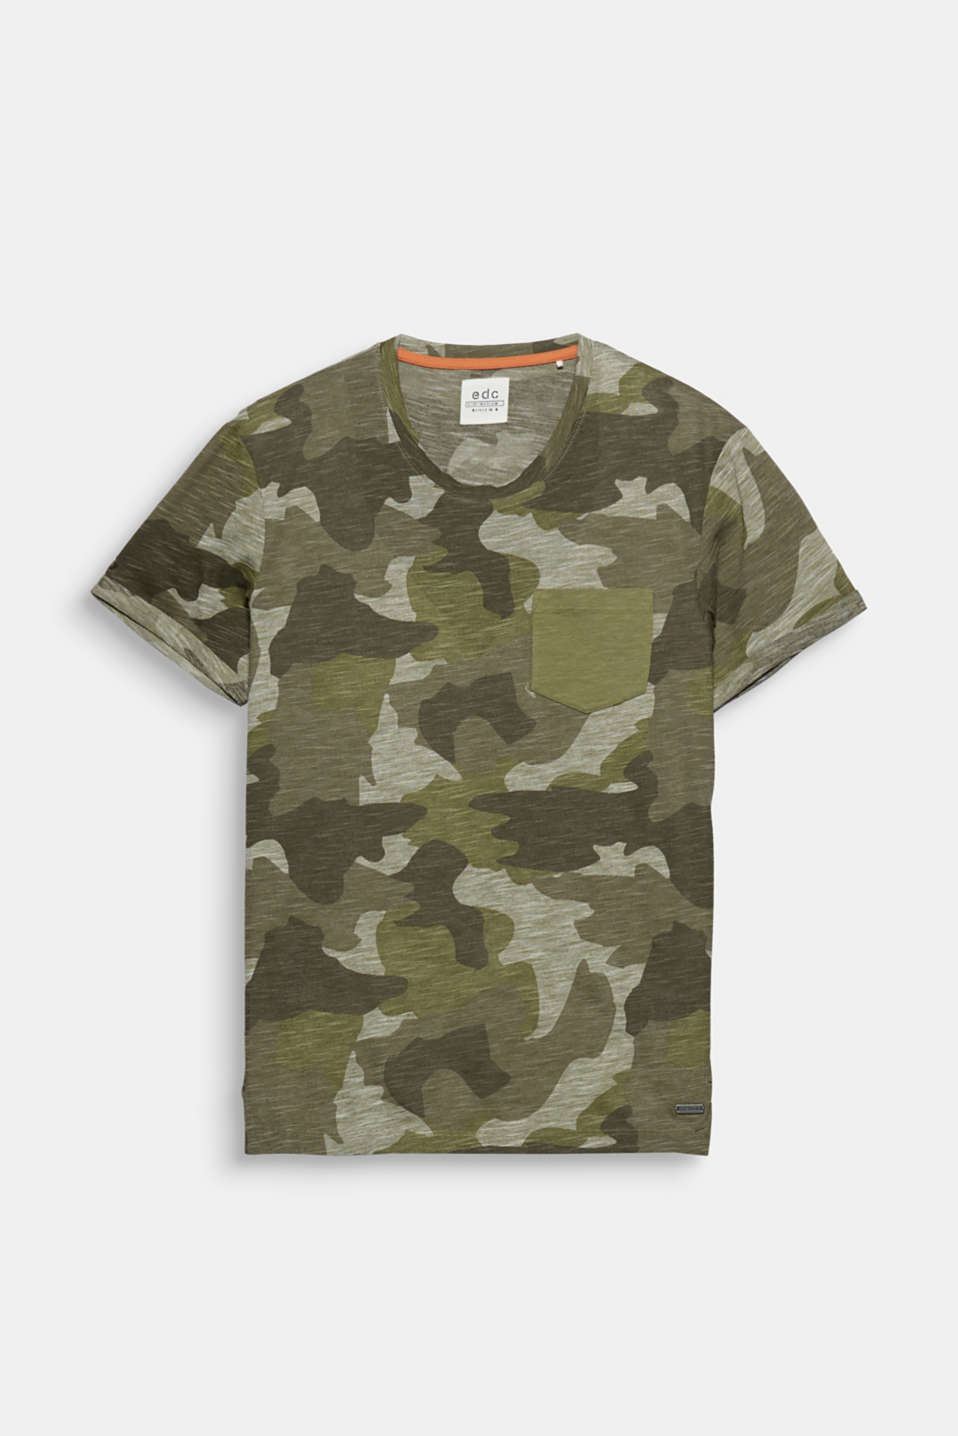 A stylish fashion piece with a timeless camouflage print: slub jersey T-shirt.